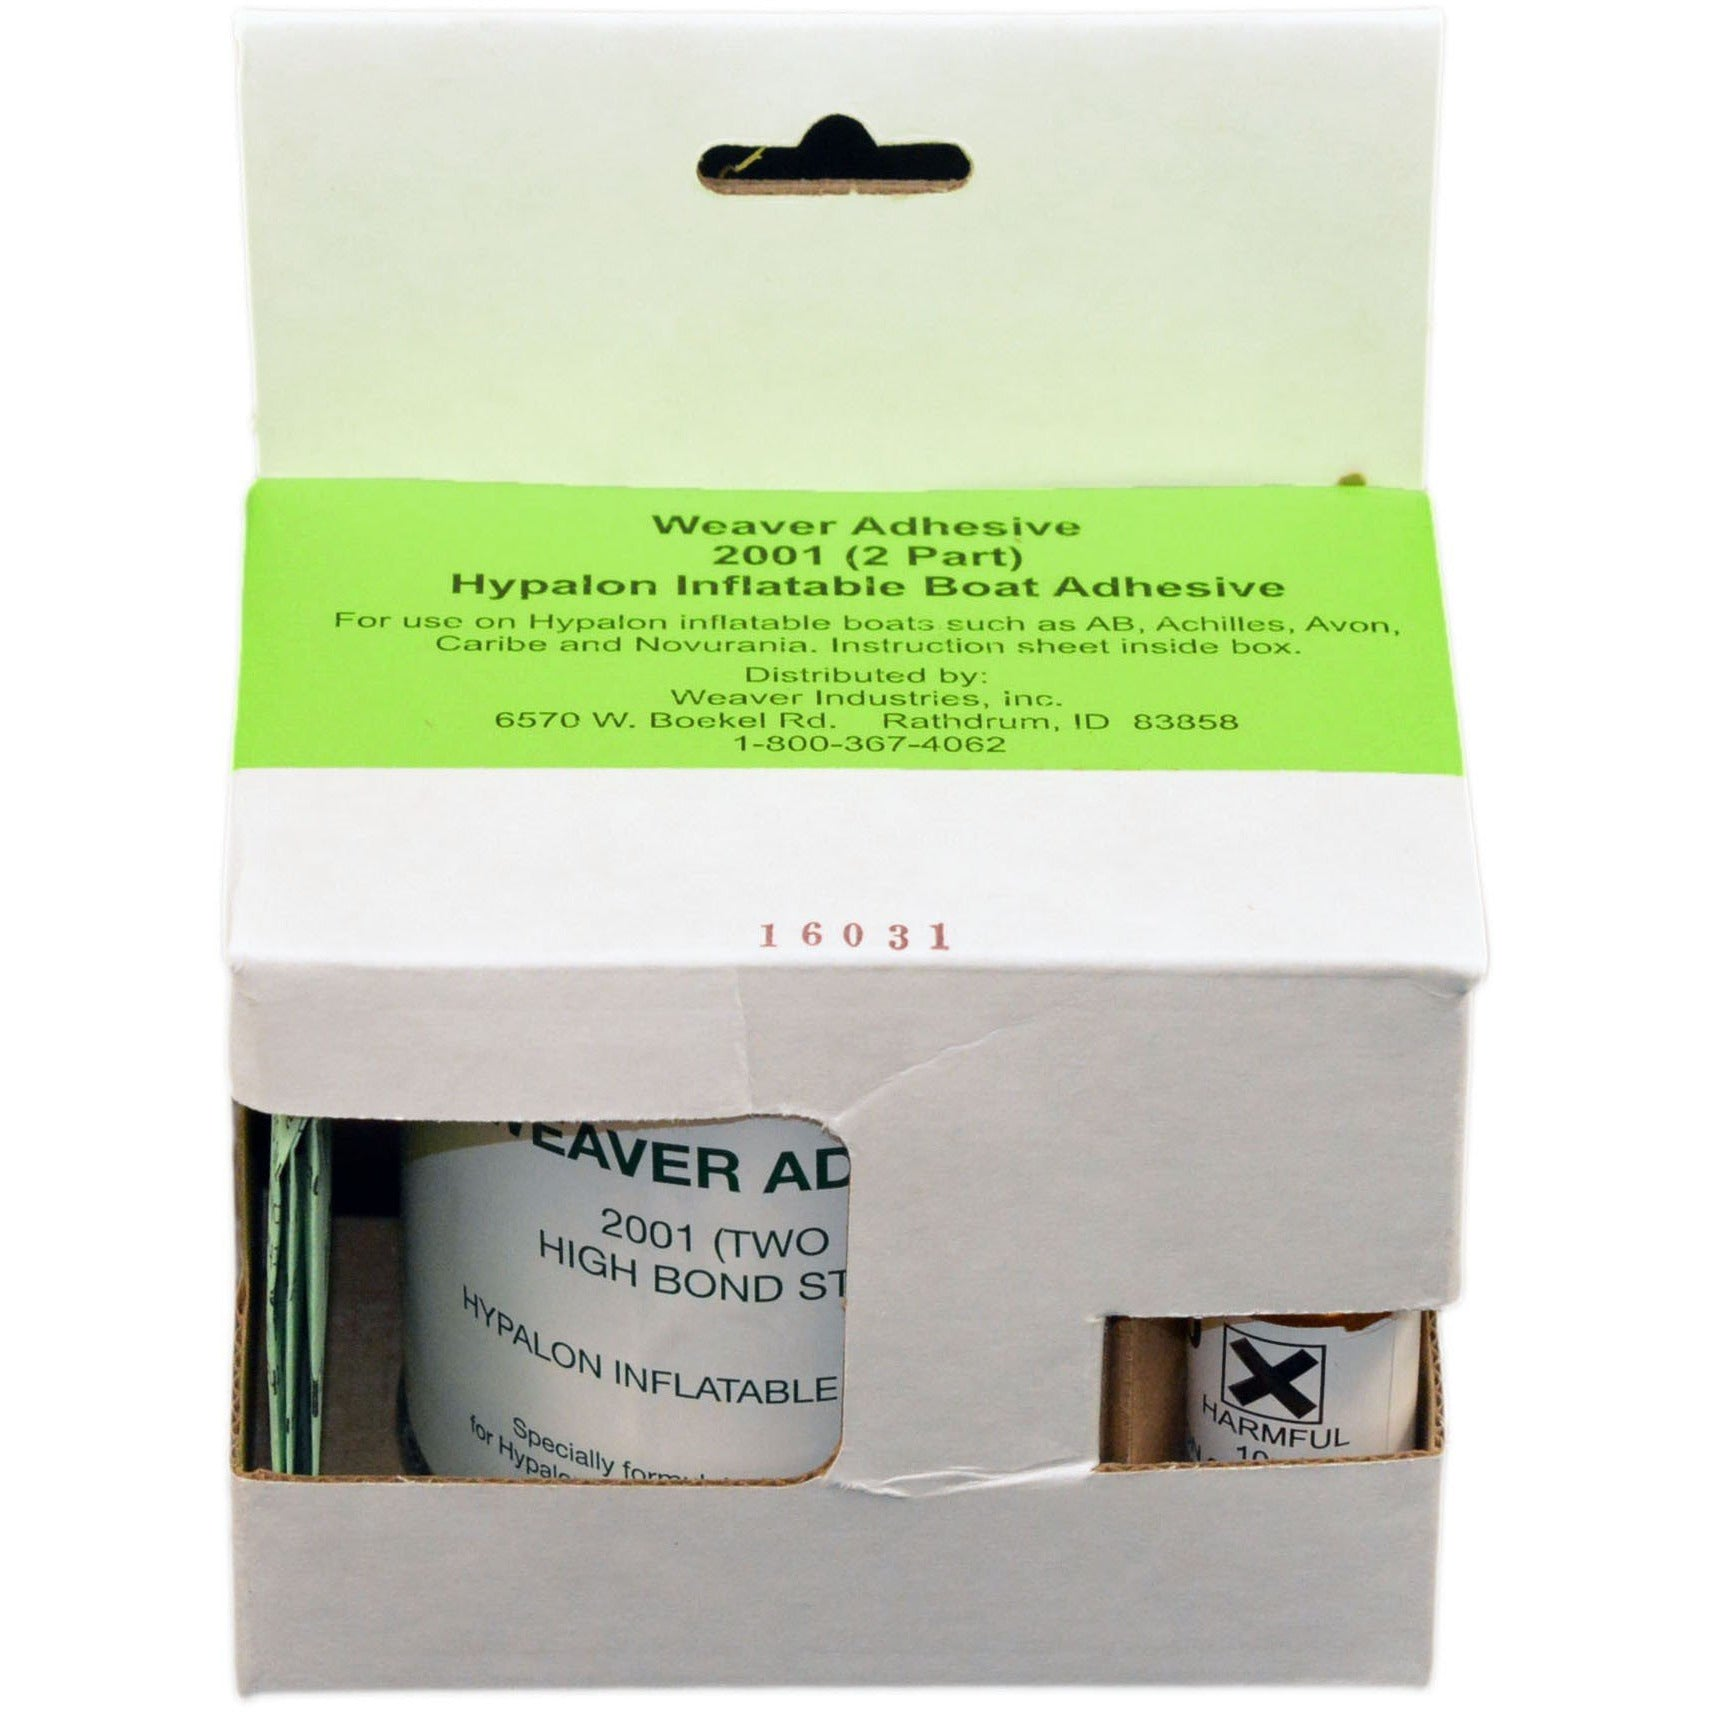 WEAVER ADHESIVE 2001 (2 PART) HYPALON INFLATABLE BOAT ADHESIVE